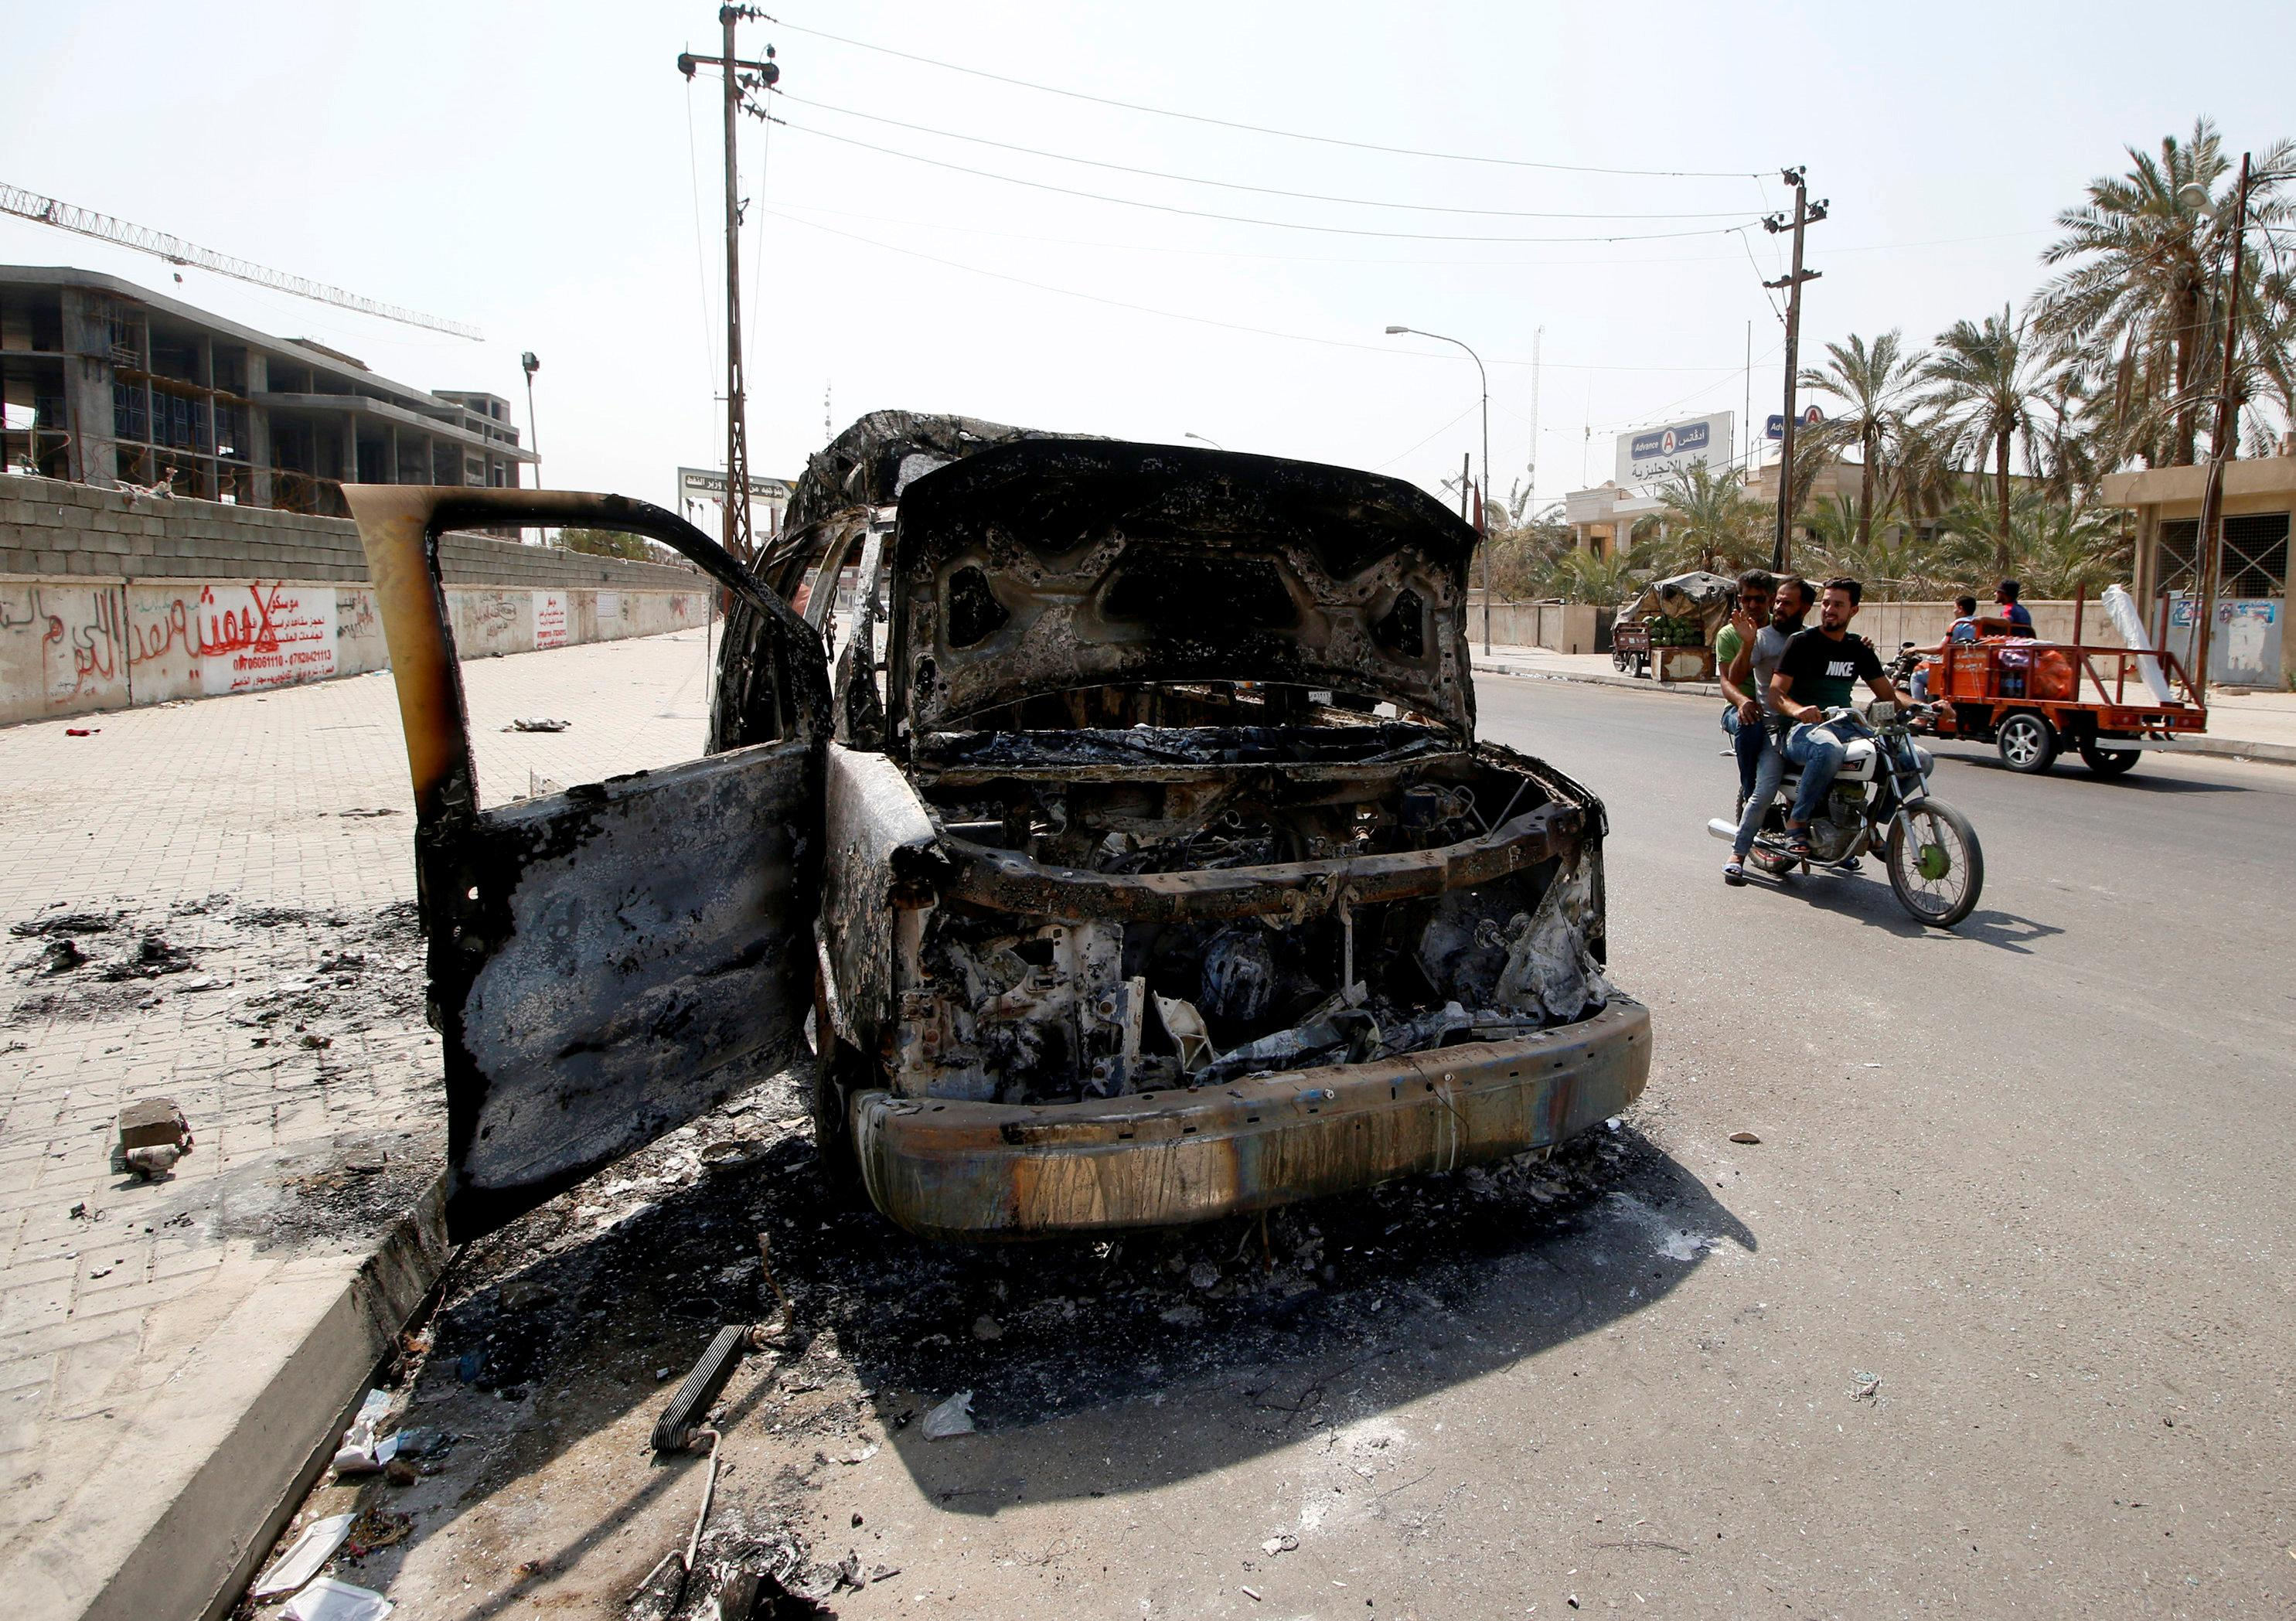 A burnt ambulance belonging to Iraq's Popular Mobilization Forces, burned during the protests, is seen in the street in Basra, Iraq September 8, 2018. Essam al-Sudani